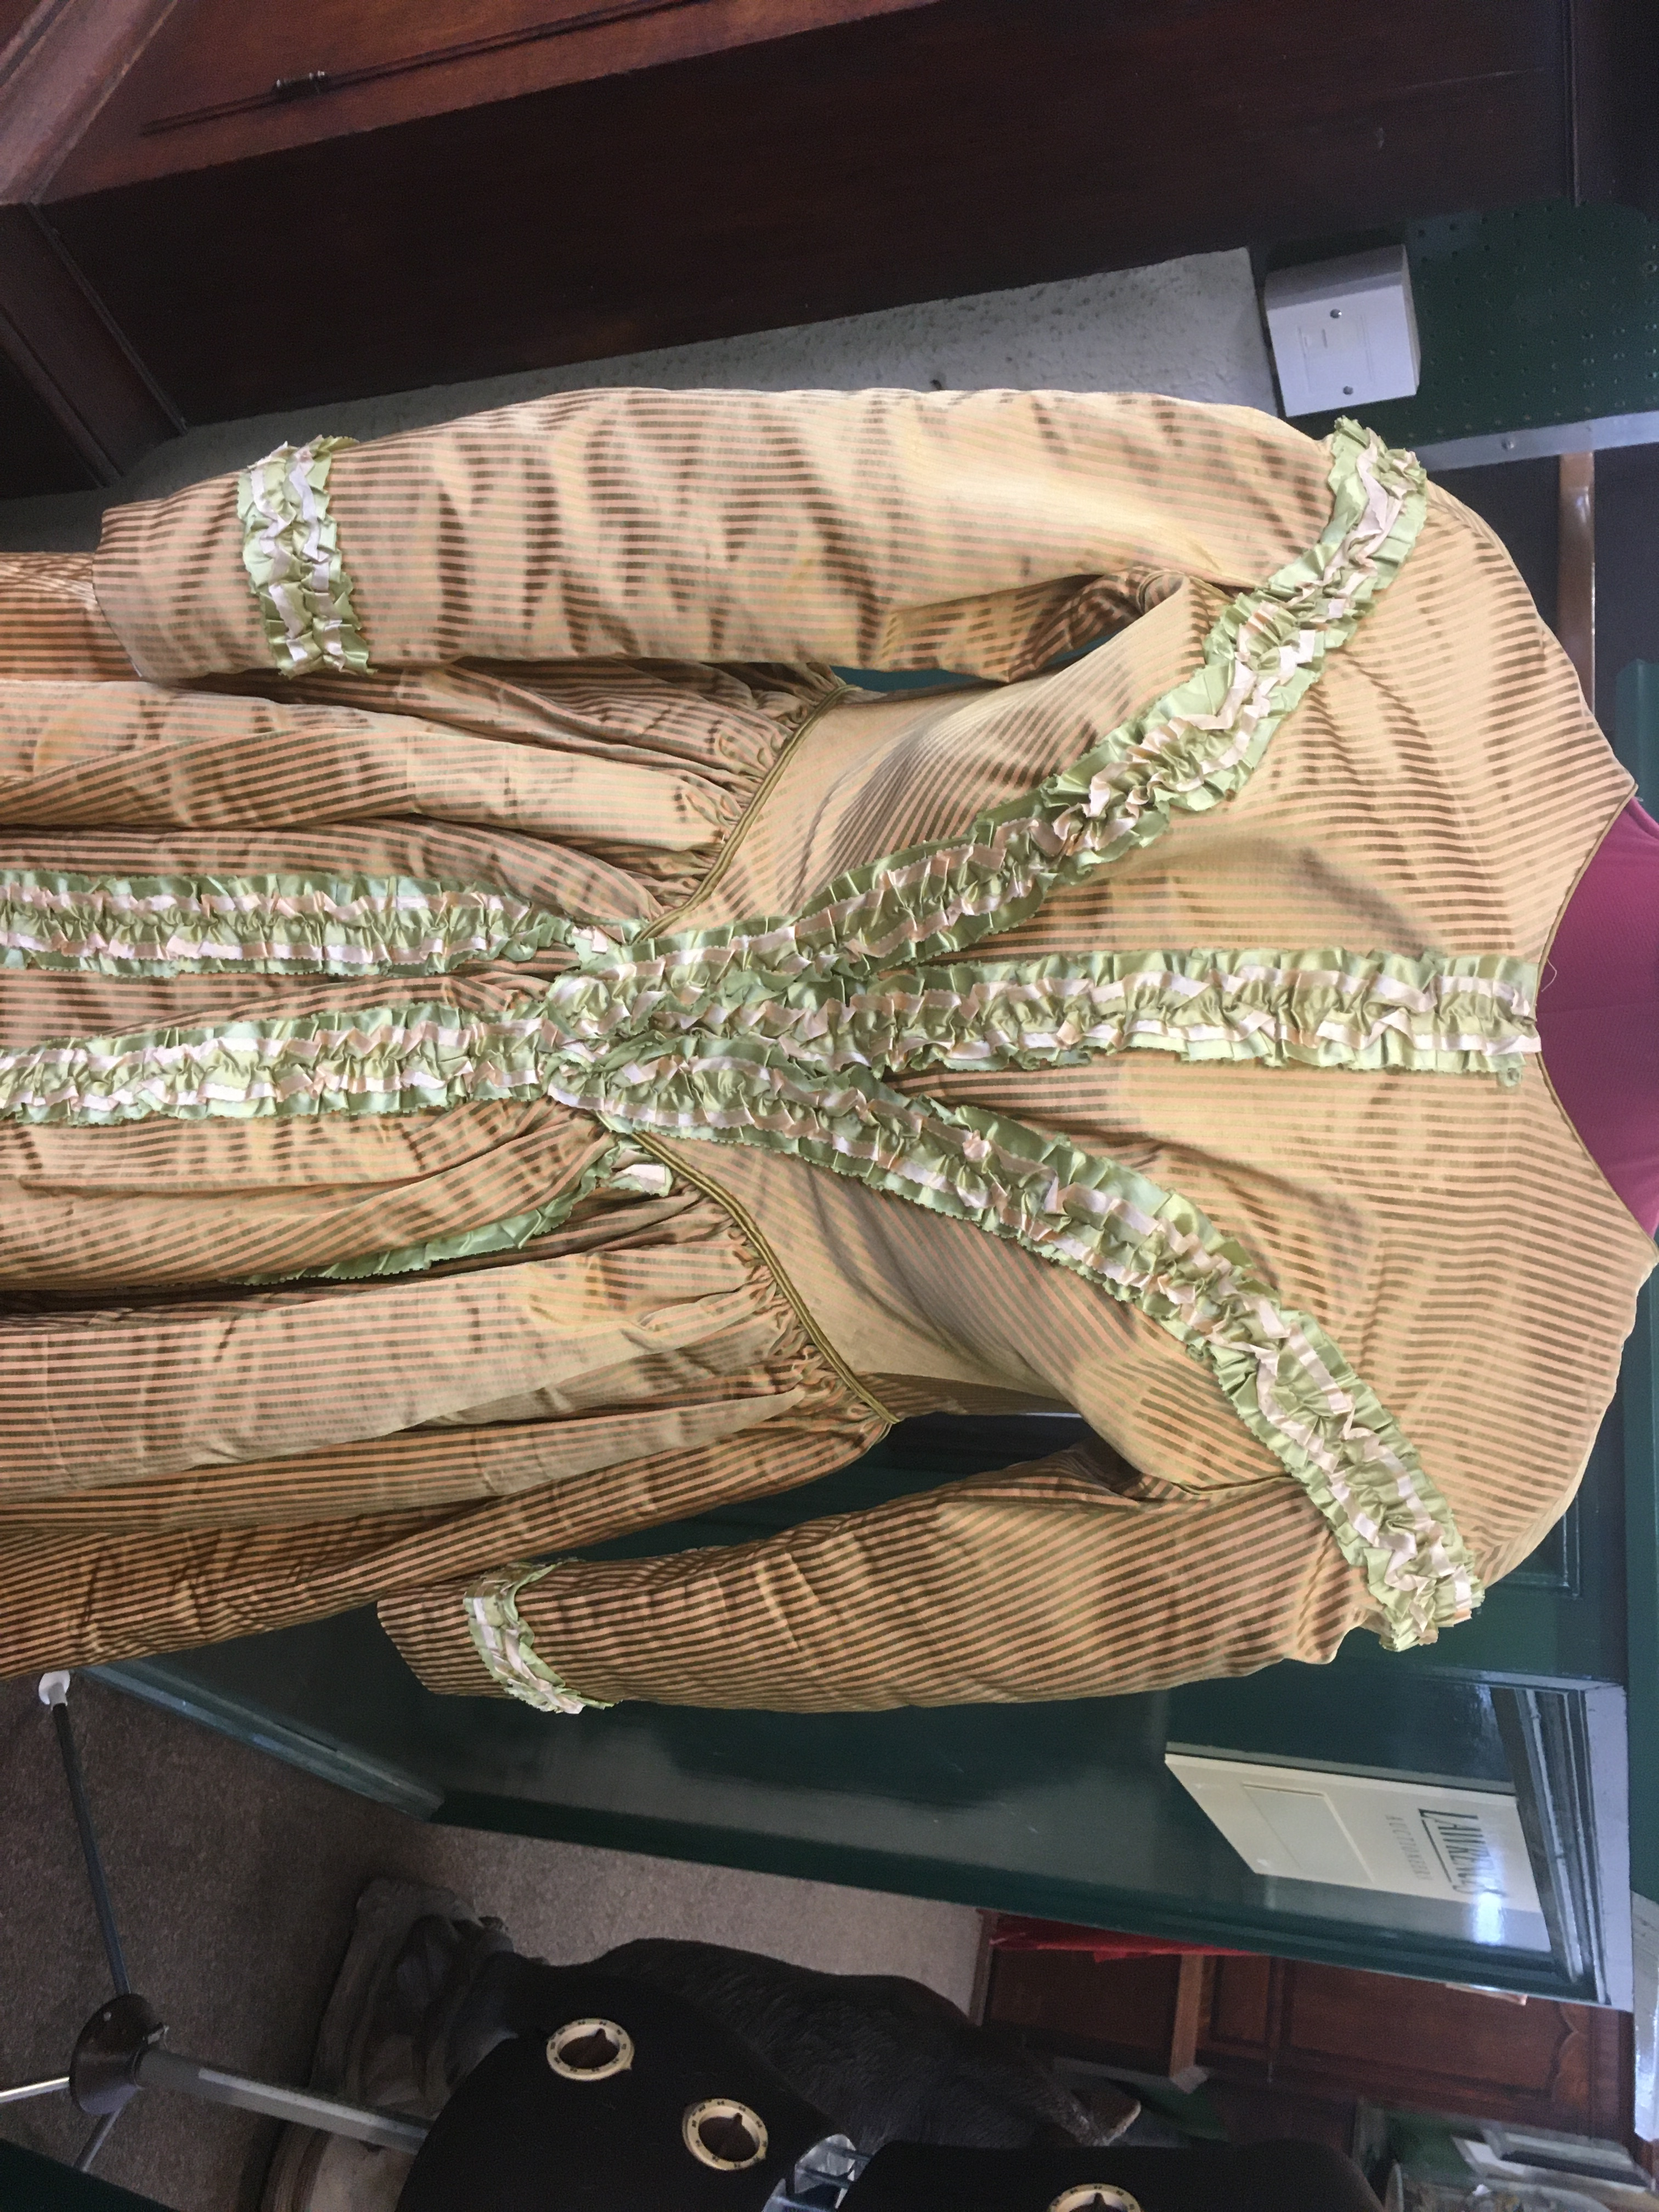 19THC SILK LADIES DRESS a mid 19thc apricot and olive green striped silk dress, decorated with - Image 2 of 9